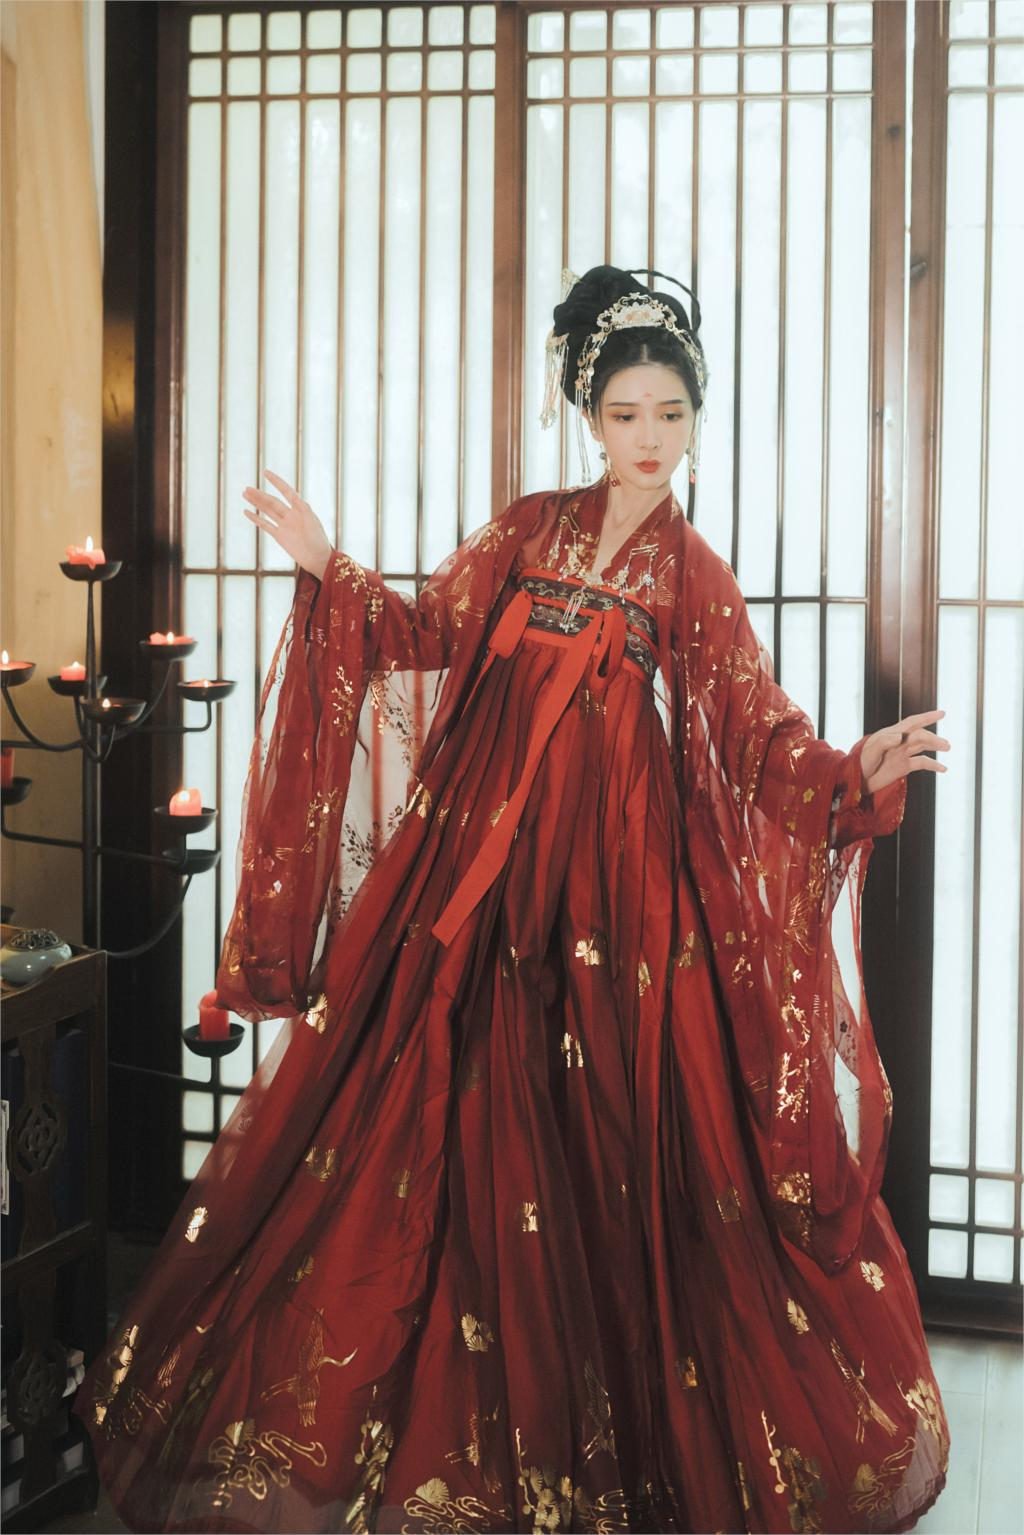 2020 Woman Chinese Traditional Hanfu Tang Suit Robe Cosplay Costume Adult Performance Stage Dance Dress Cheongsam Outfit Clothin